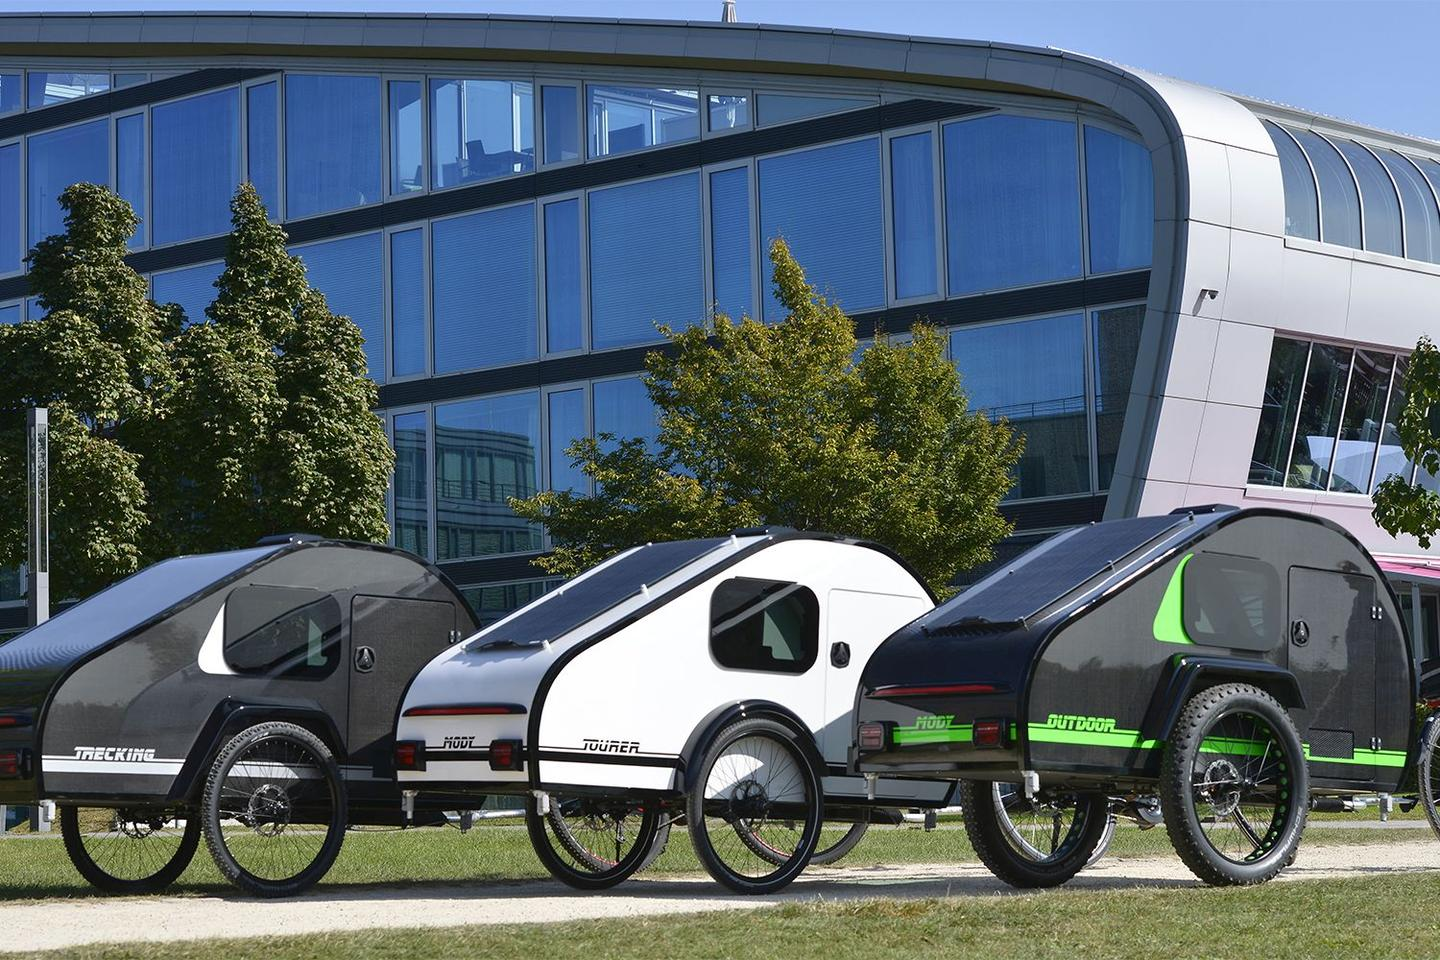 All three Bicycle Caravan models lined up and ready to tour